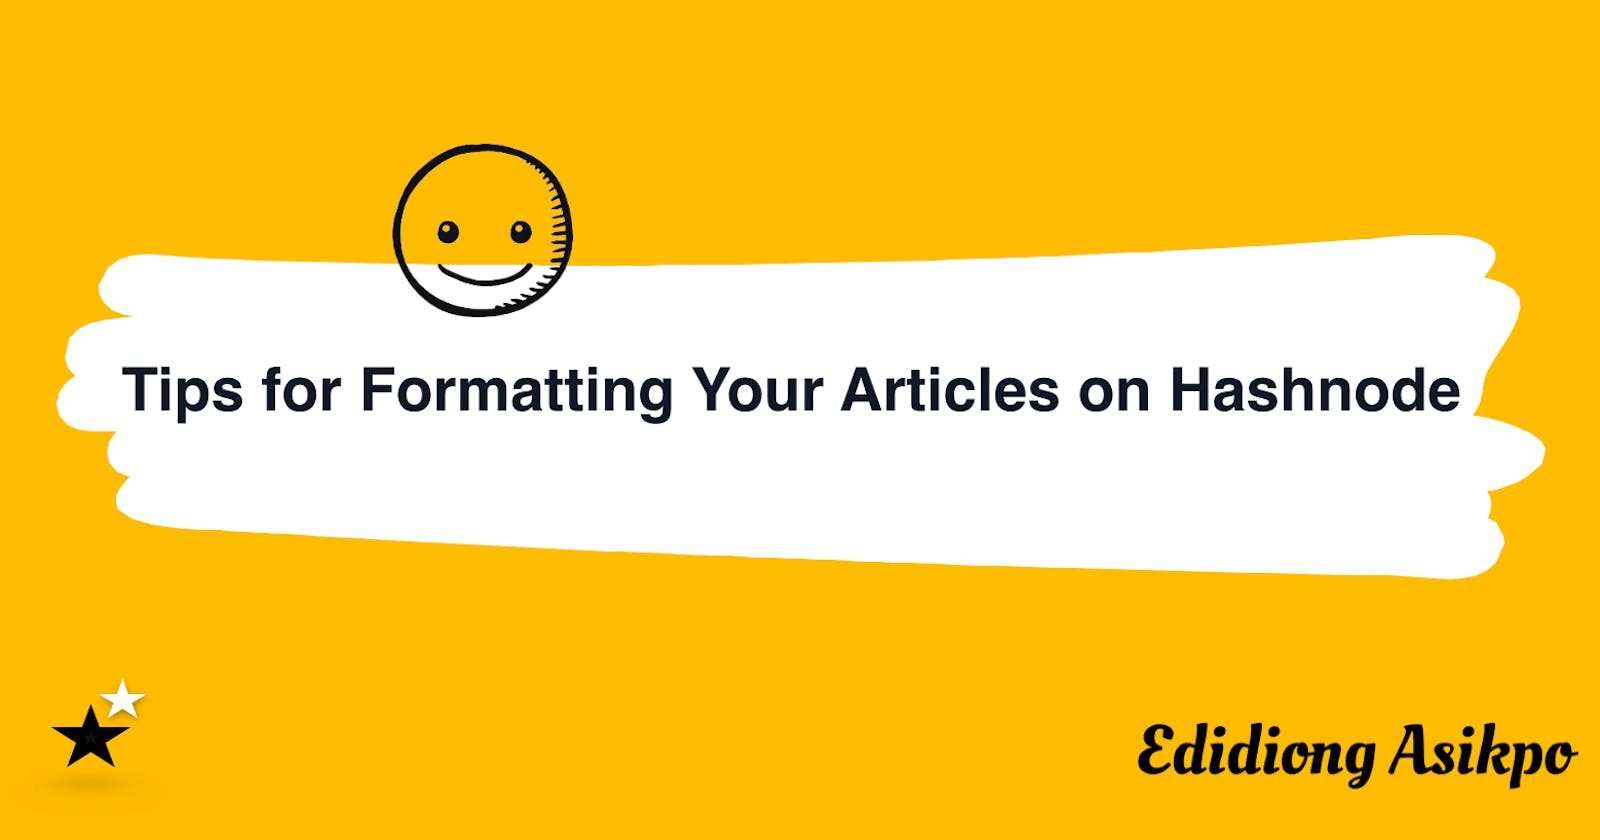 Tips for Formatting Your Articles on Hashnode